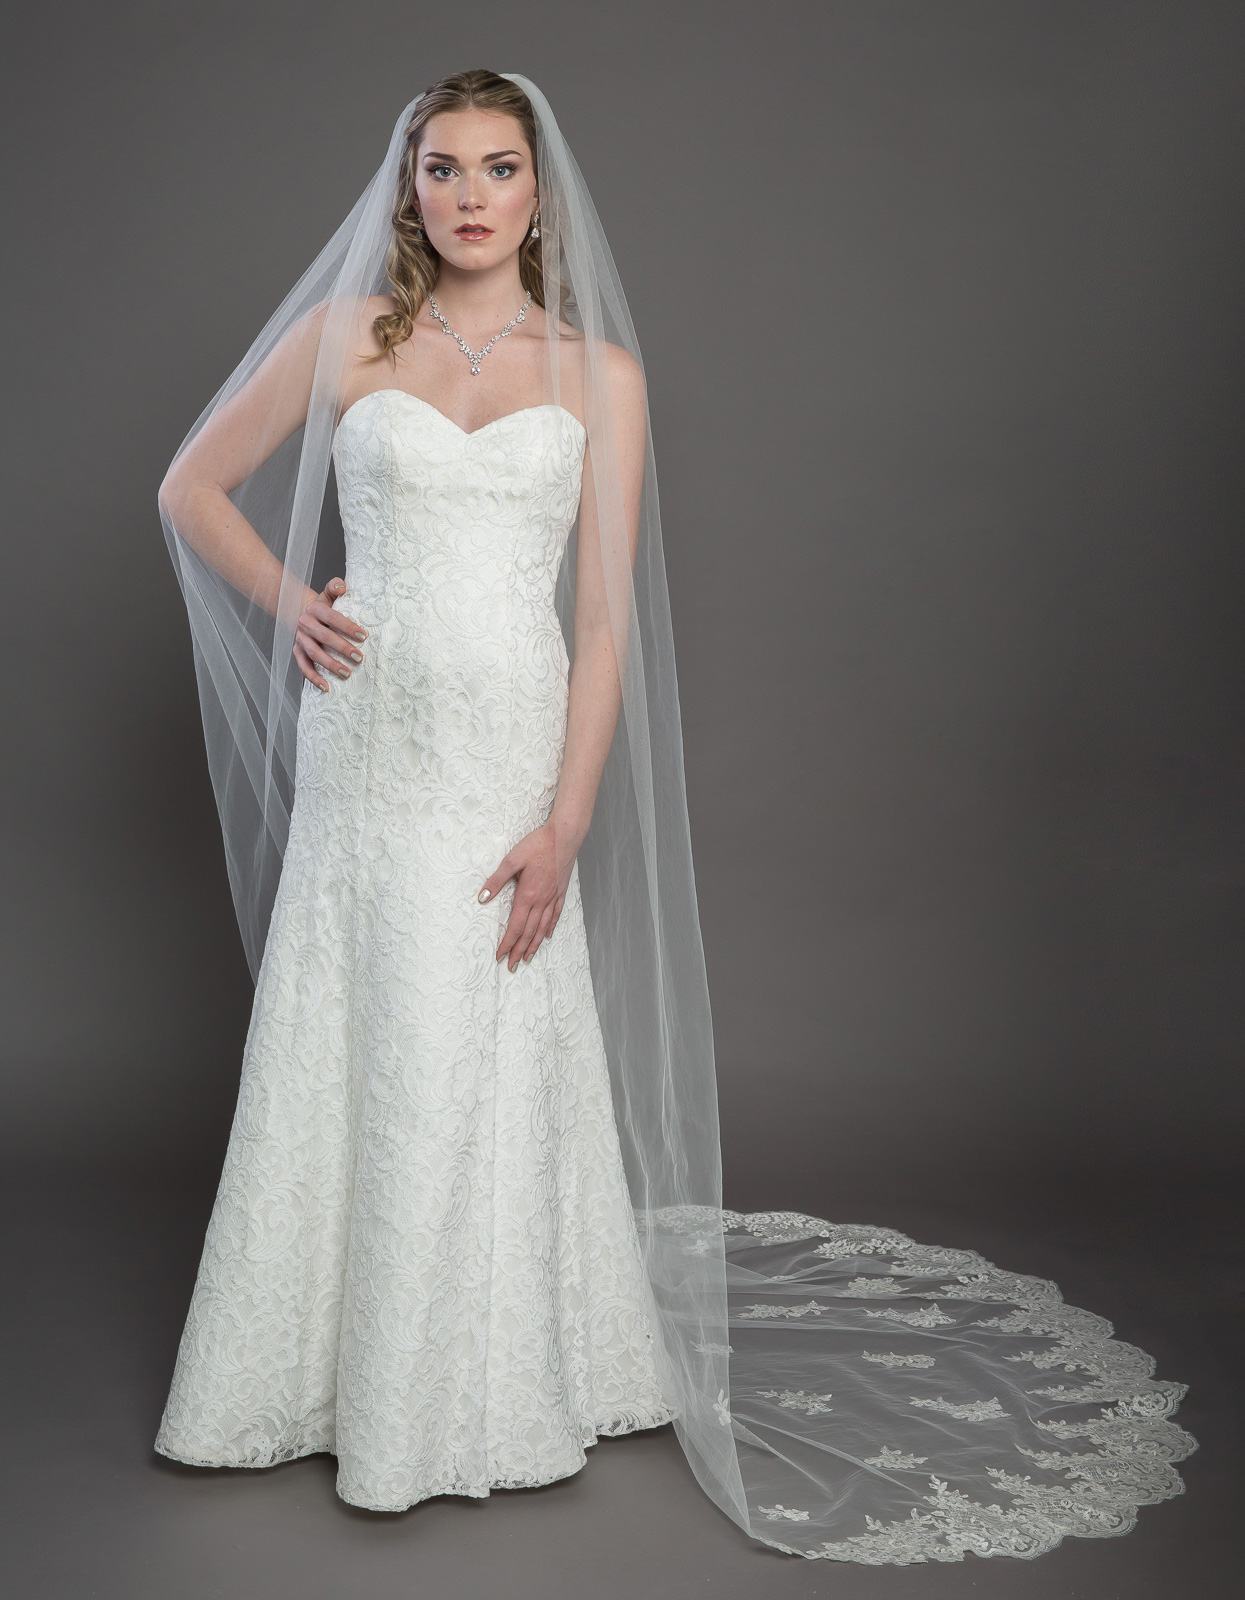 Bridal Classics Marquise Veil Collection MV-2422